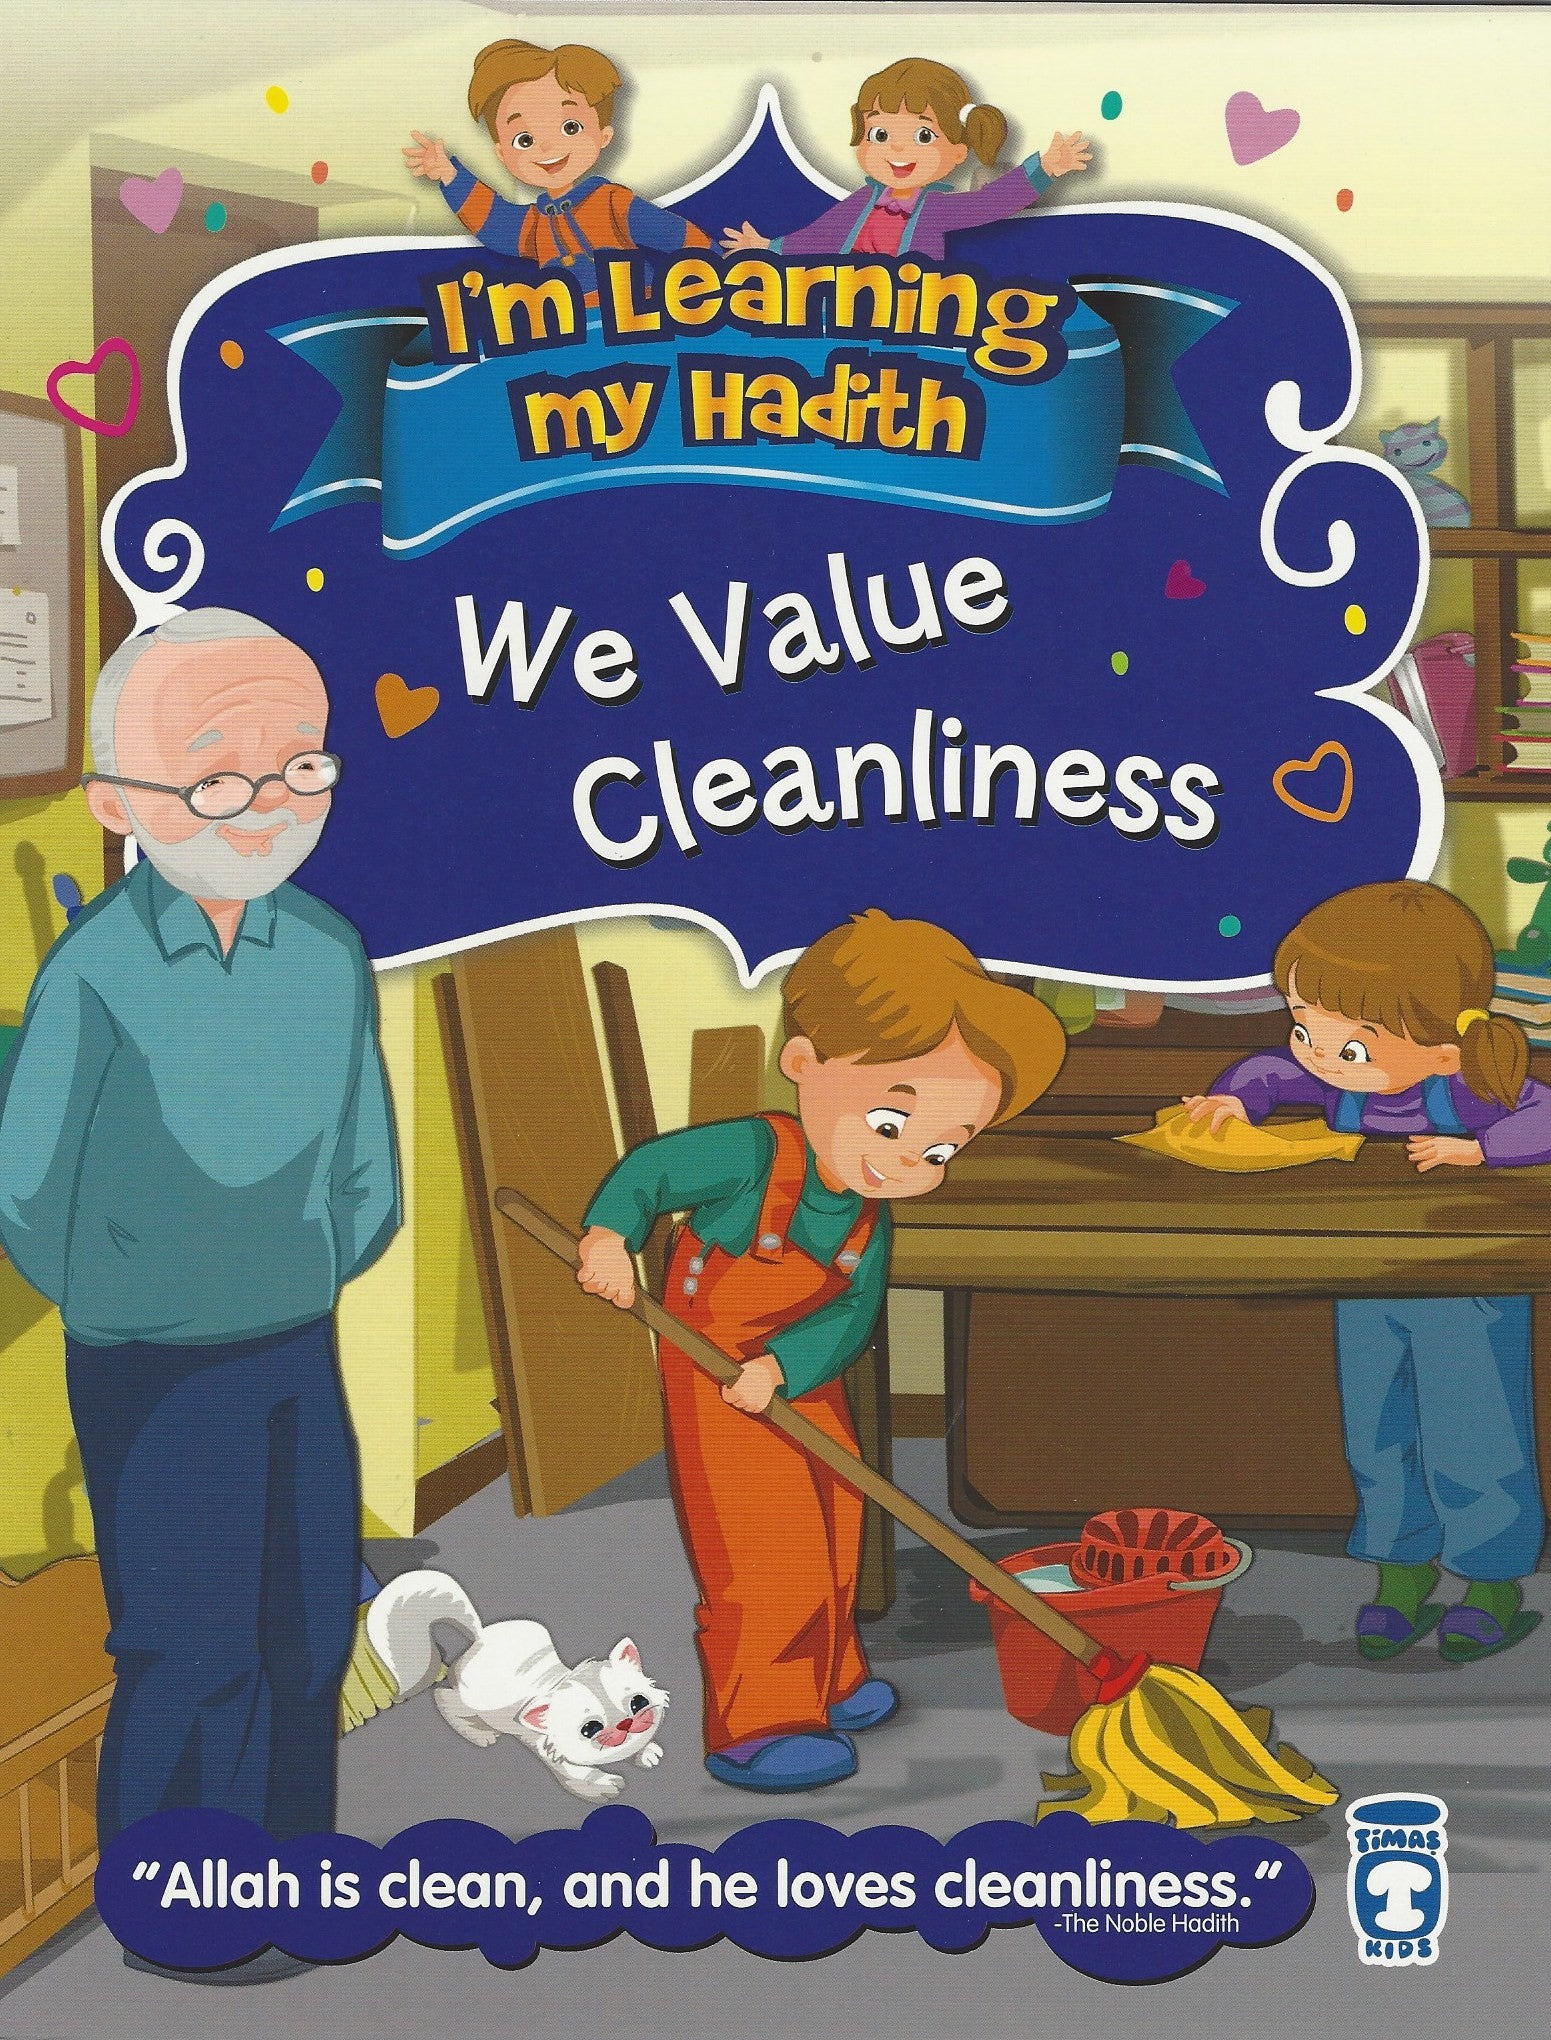 I'm Learning My Hadith (10 volumes) We Value Cleanliness, Book - Daybreak International Bookstore, Daybreak Press Global Bookshop  - 2